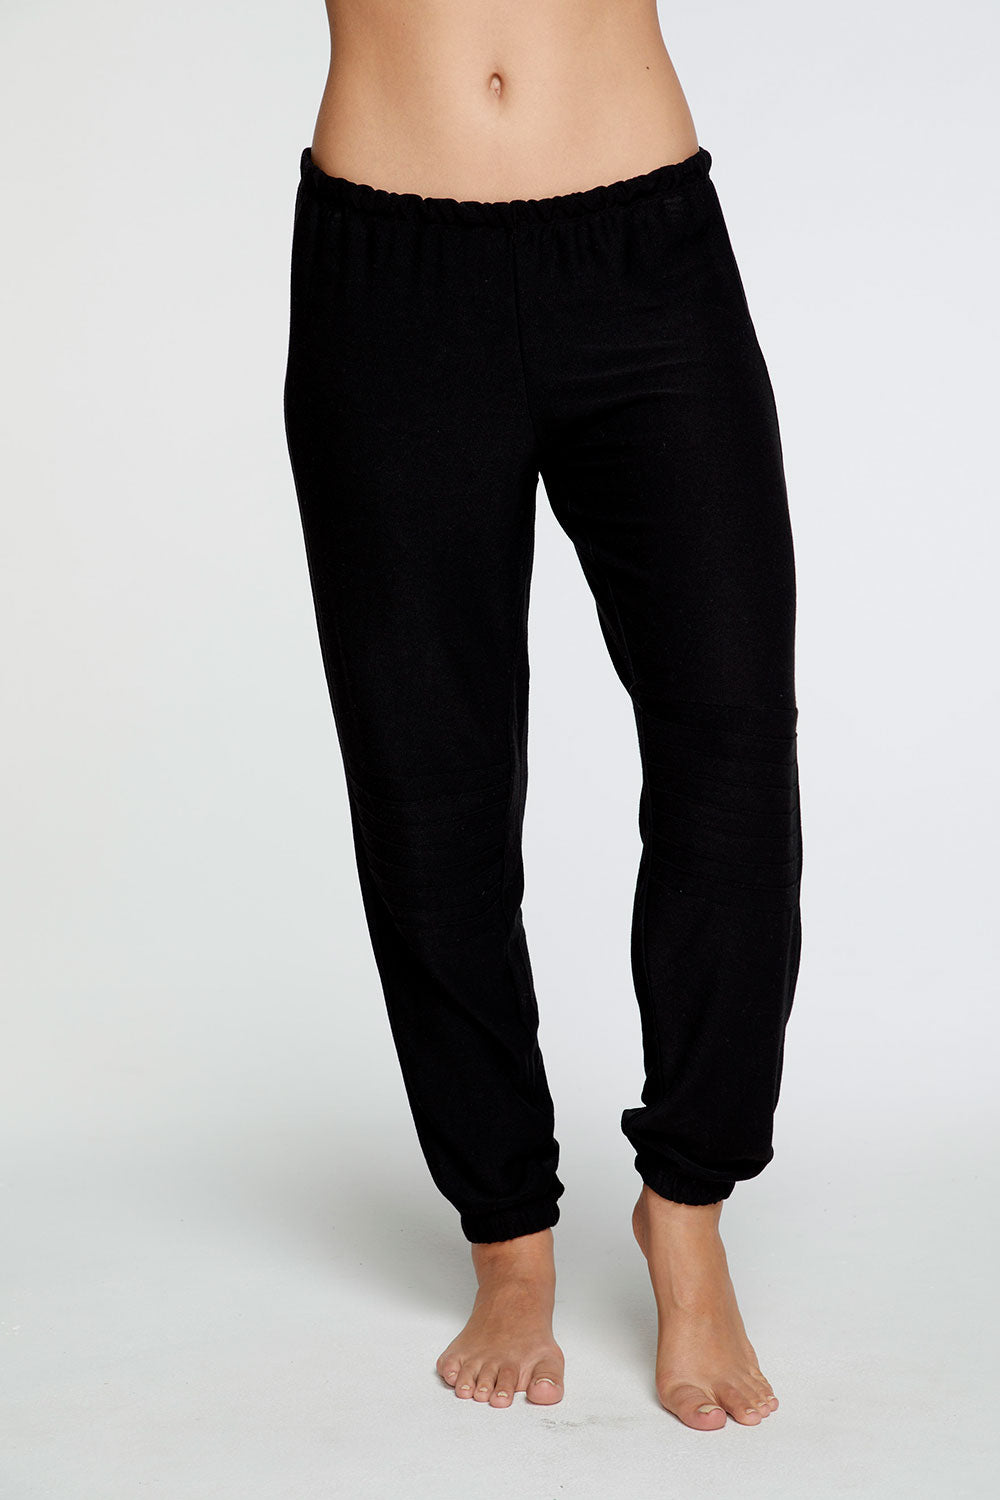 Cozy Knit Slouchy Moto Jogger in True Black WOMENS chaserbrand4.myshopify.com